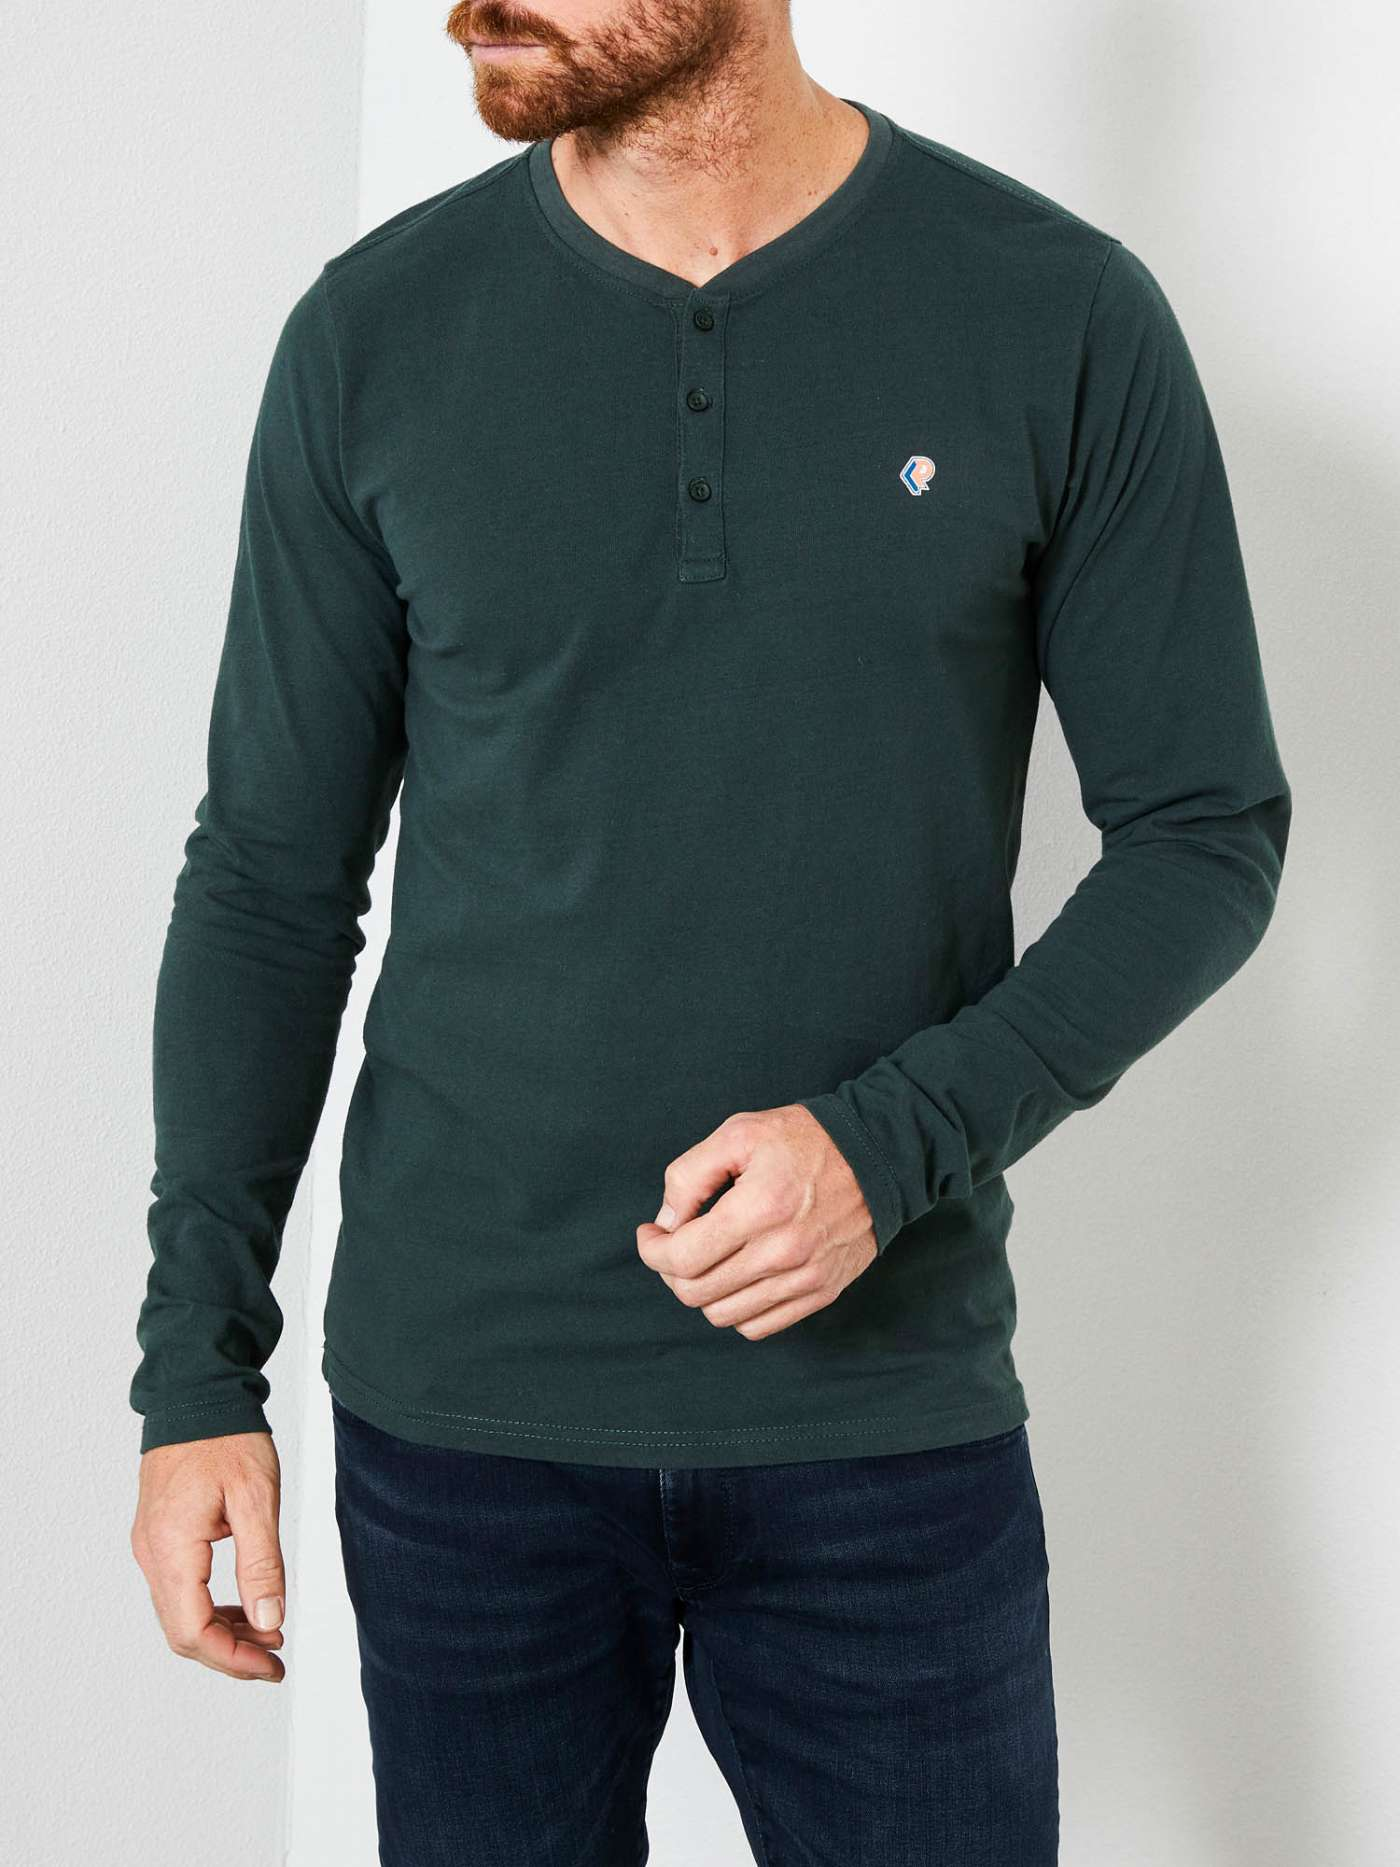 Long-sleeved shirt with buttons